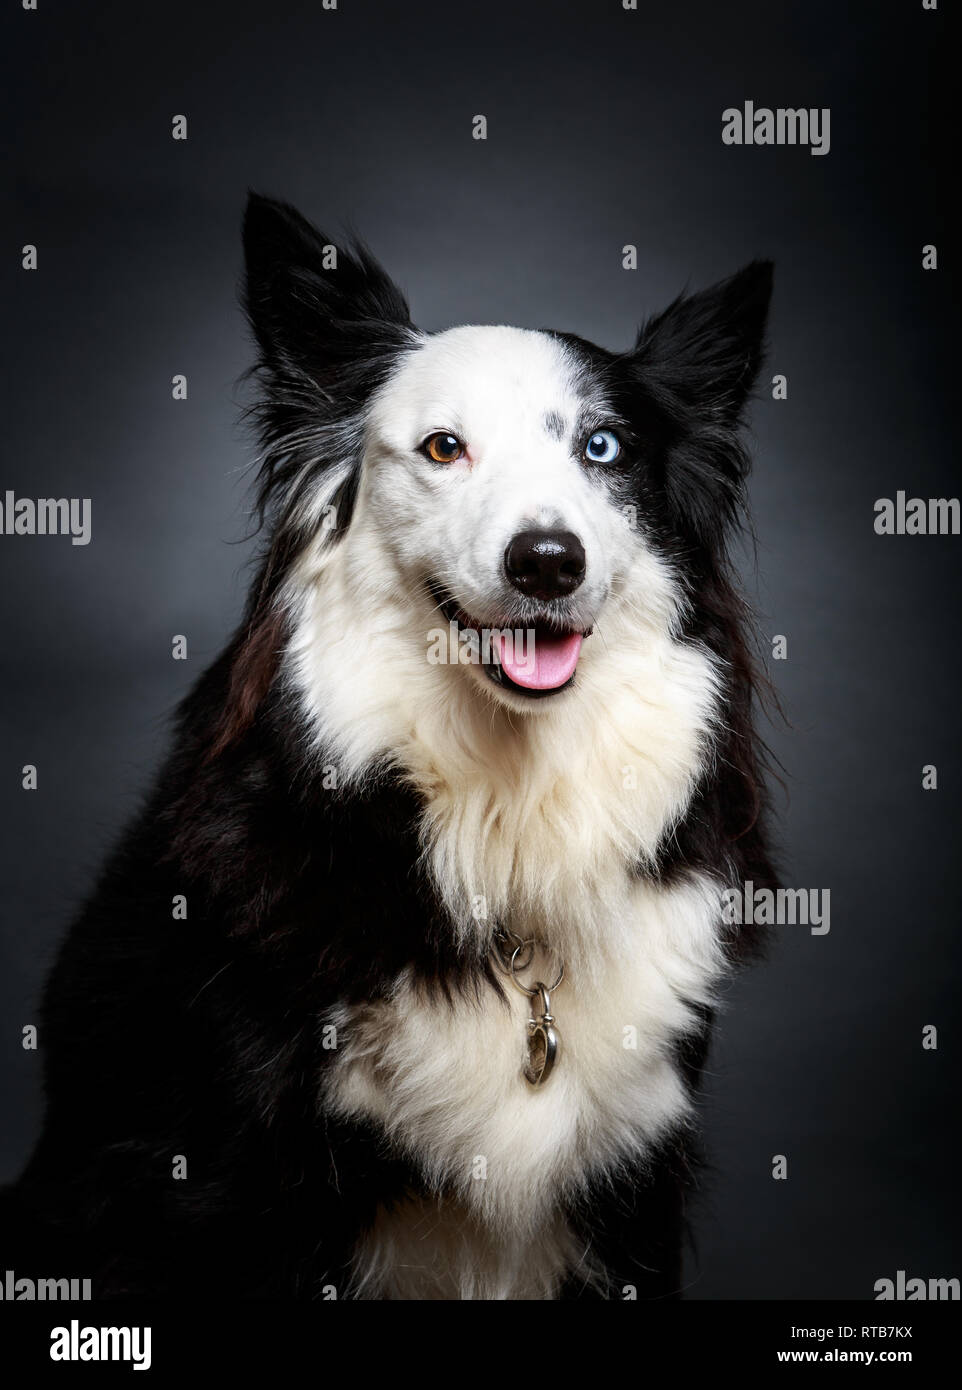 Funny dog with different eyes - Stock Image